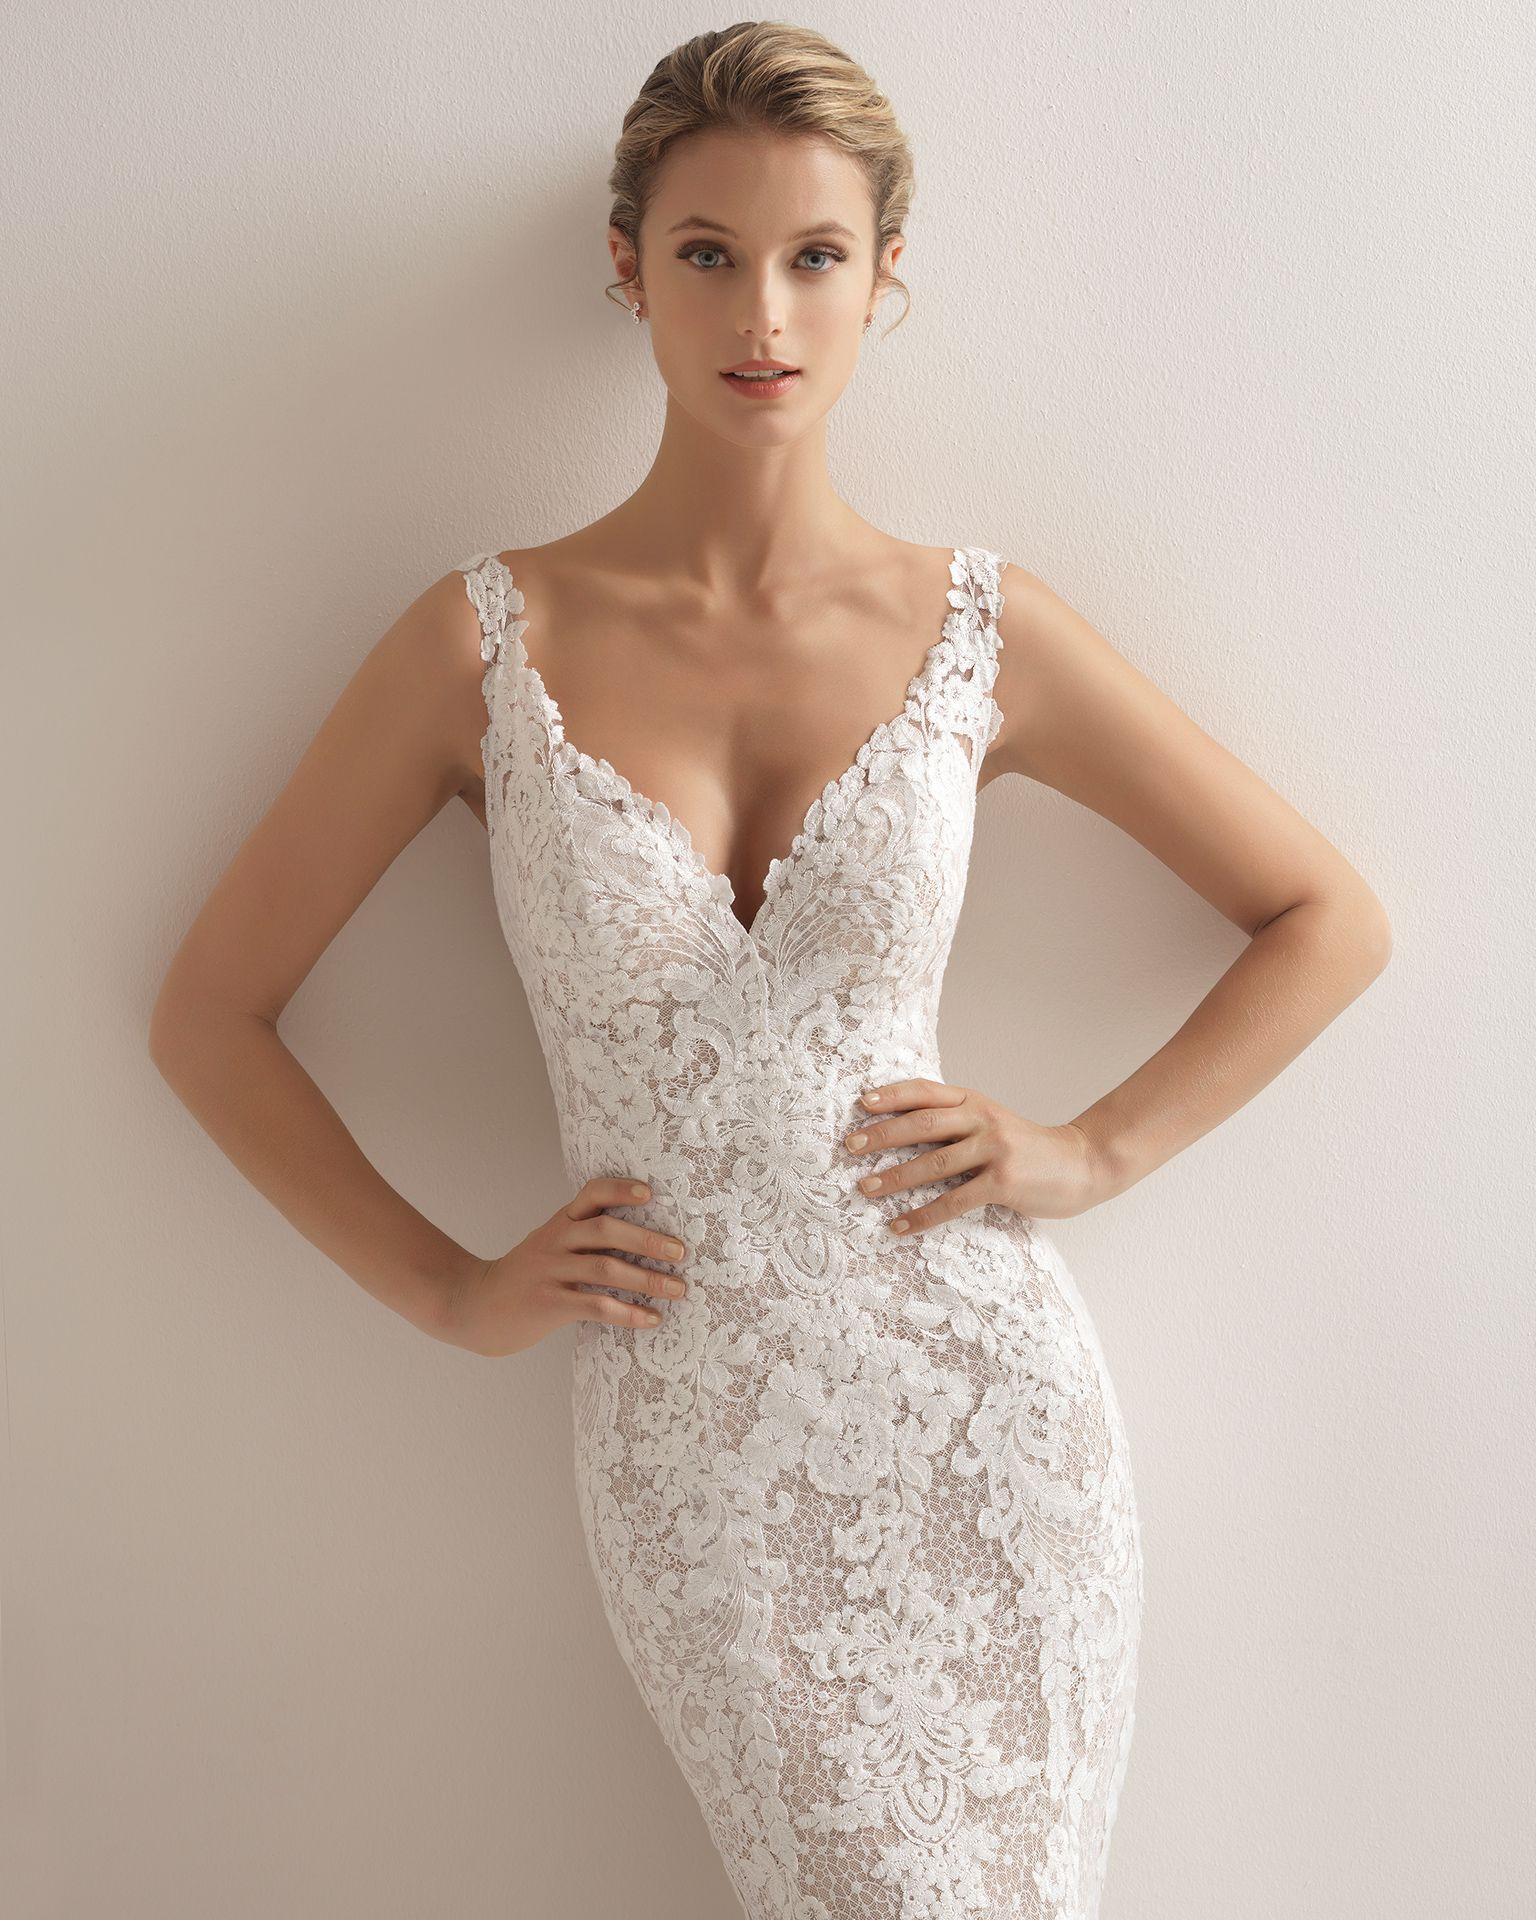 d17718bcf Romantic-style lace wedding dress with V-neckline and tattoo-effect back  with lace detail, in nude and natural.